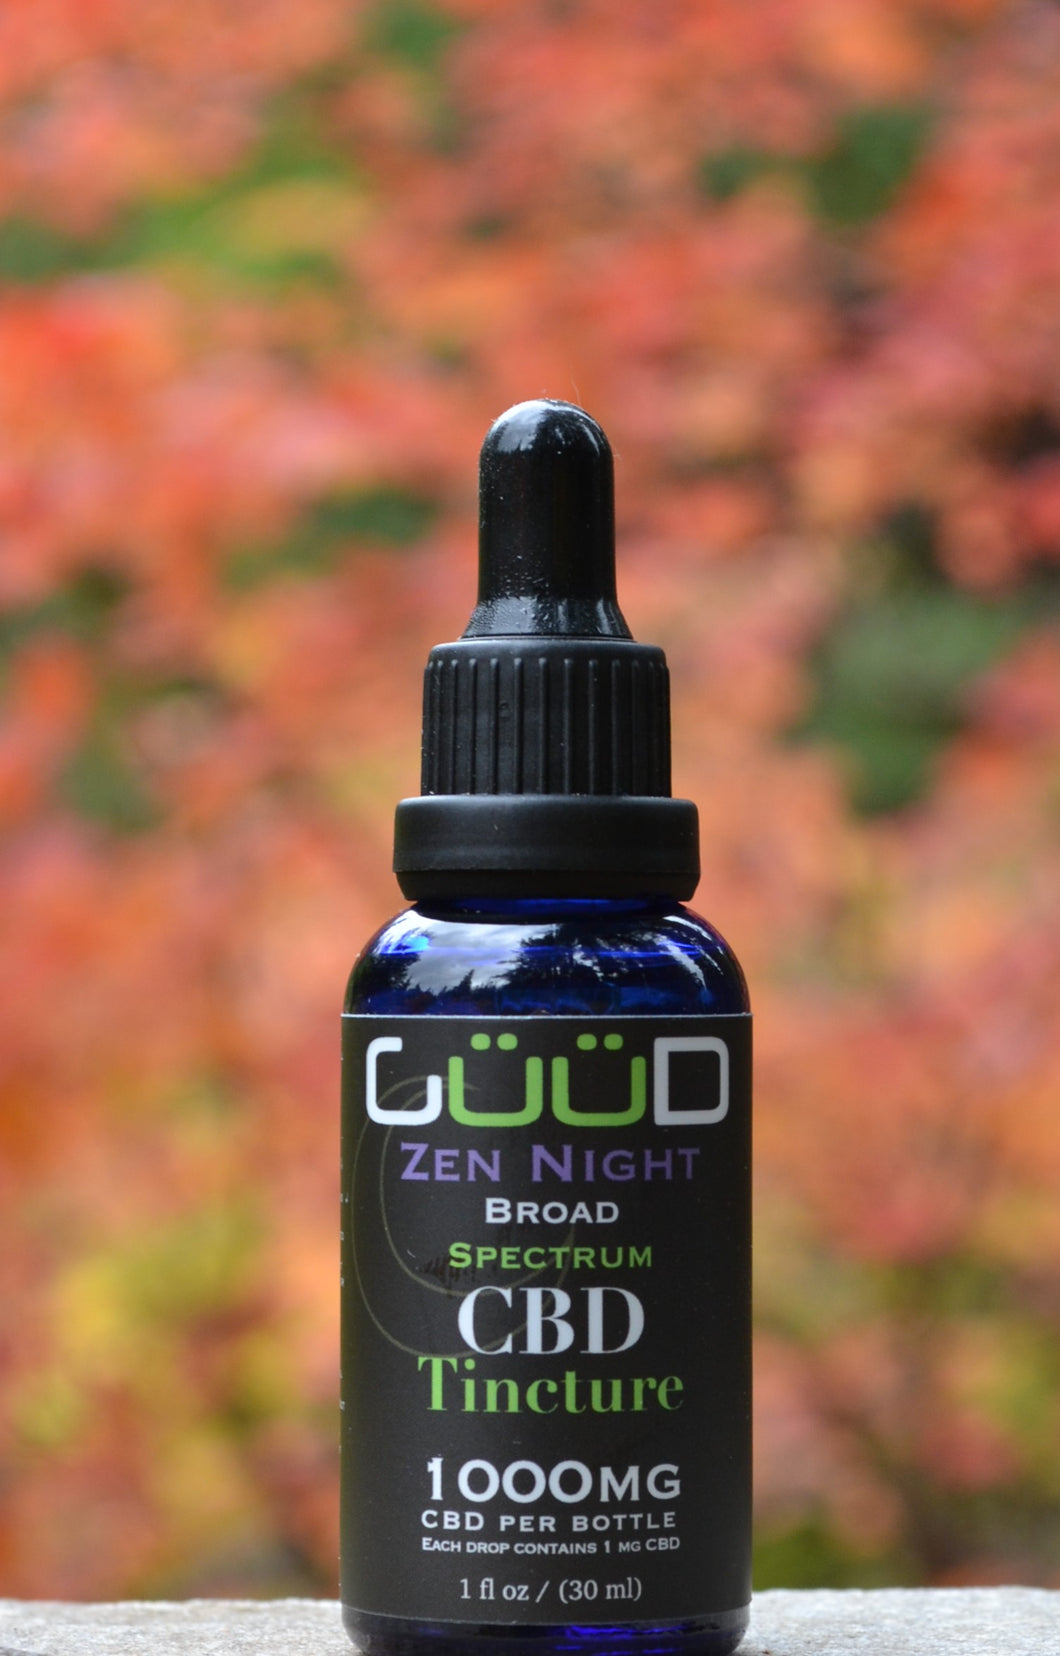 Zen Night CBD Tincture